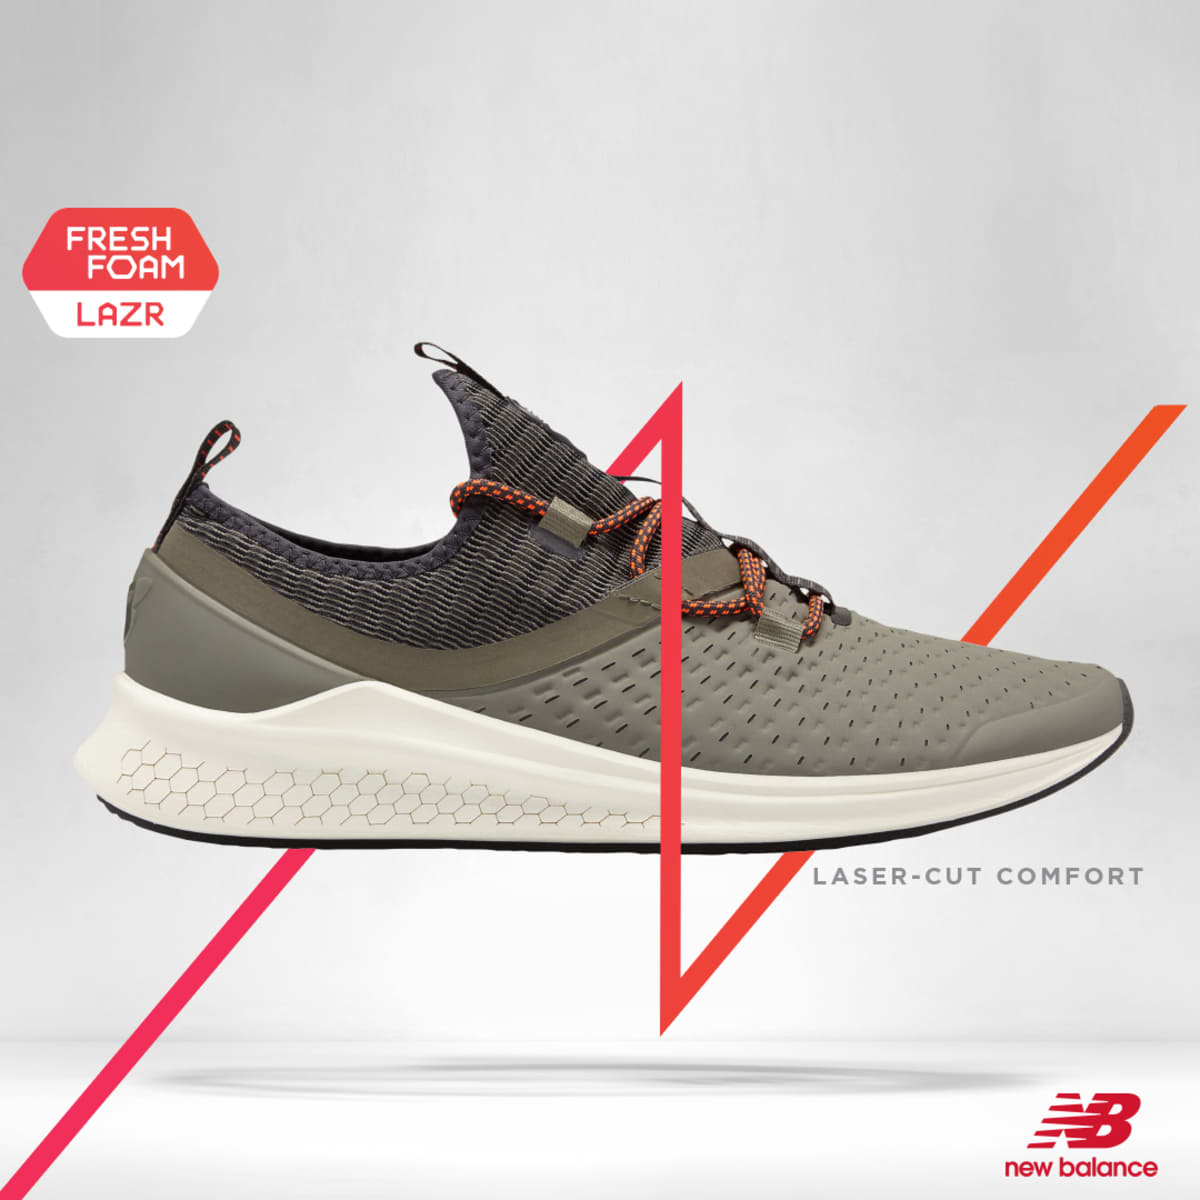 New Balance Competition Terms and Conditions